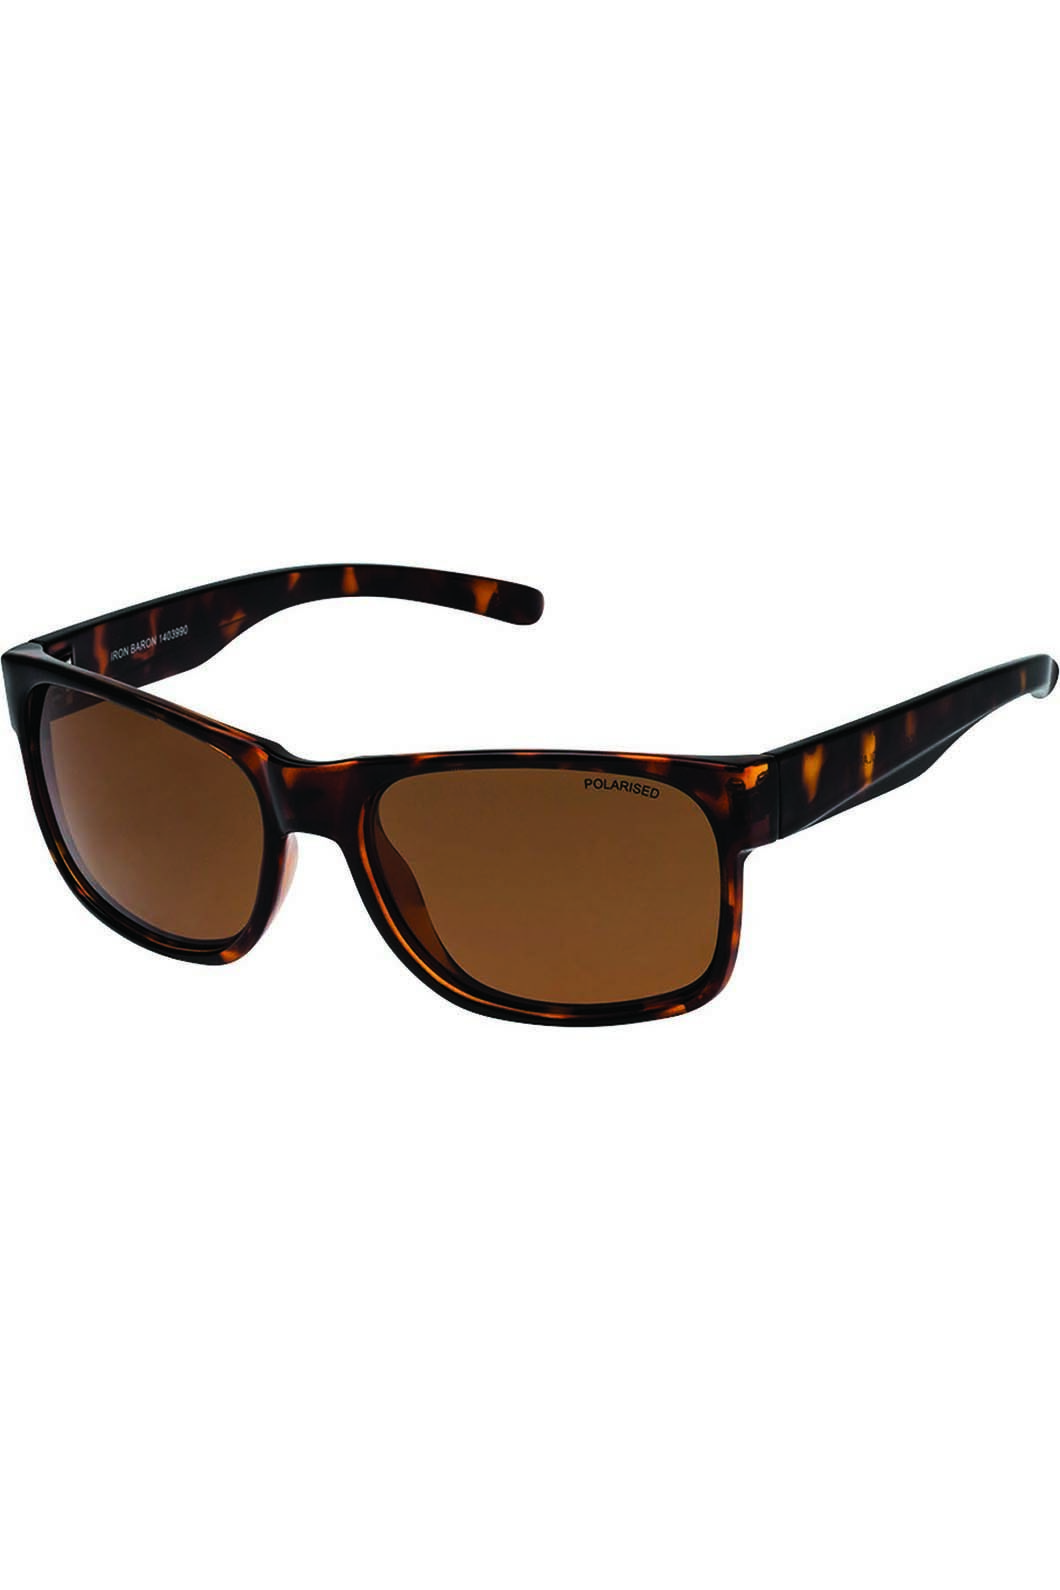 Cancer Council Unisex Iron Baron Sunglasses, TORT, hi-res